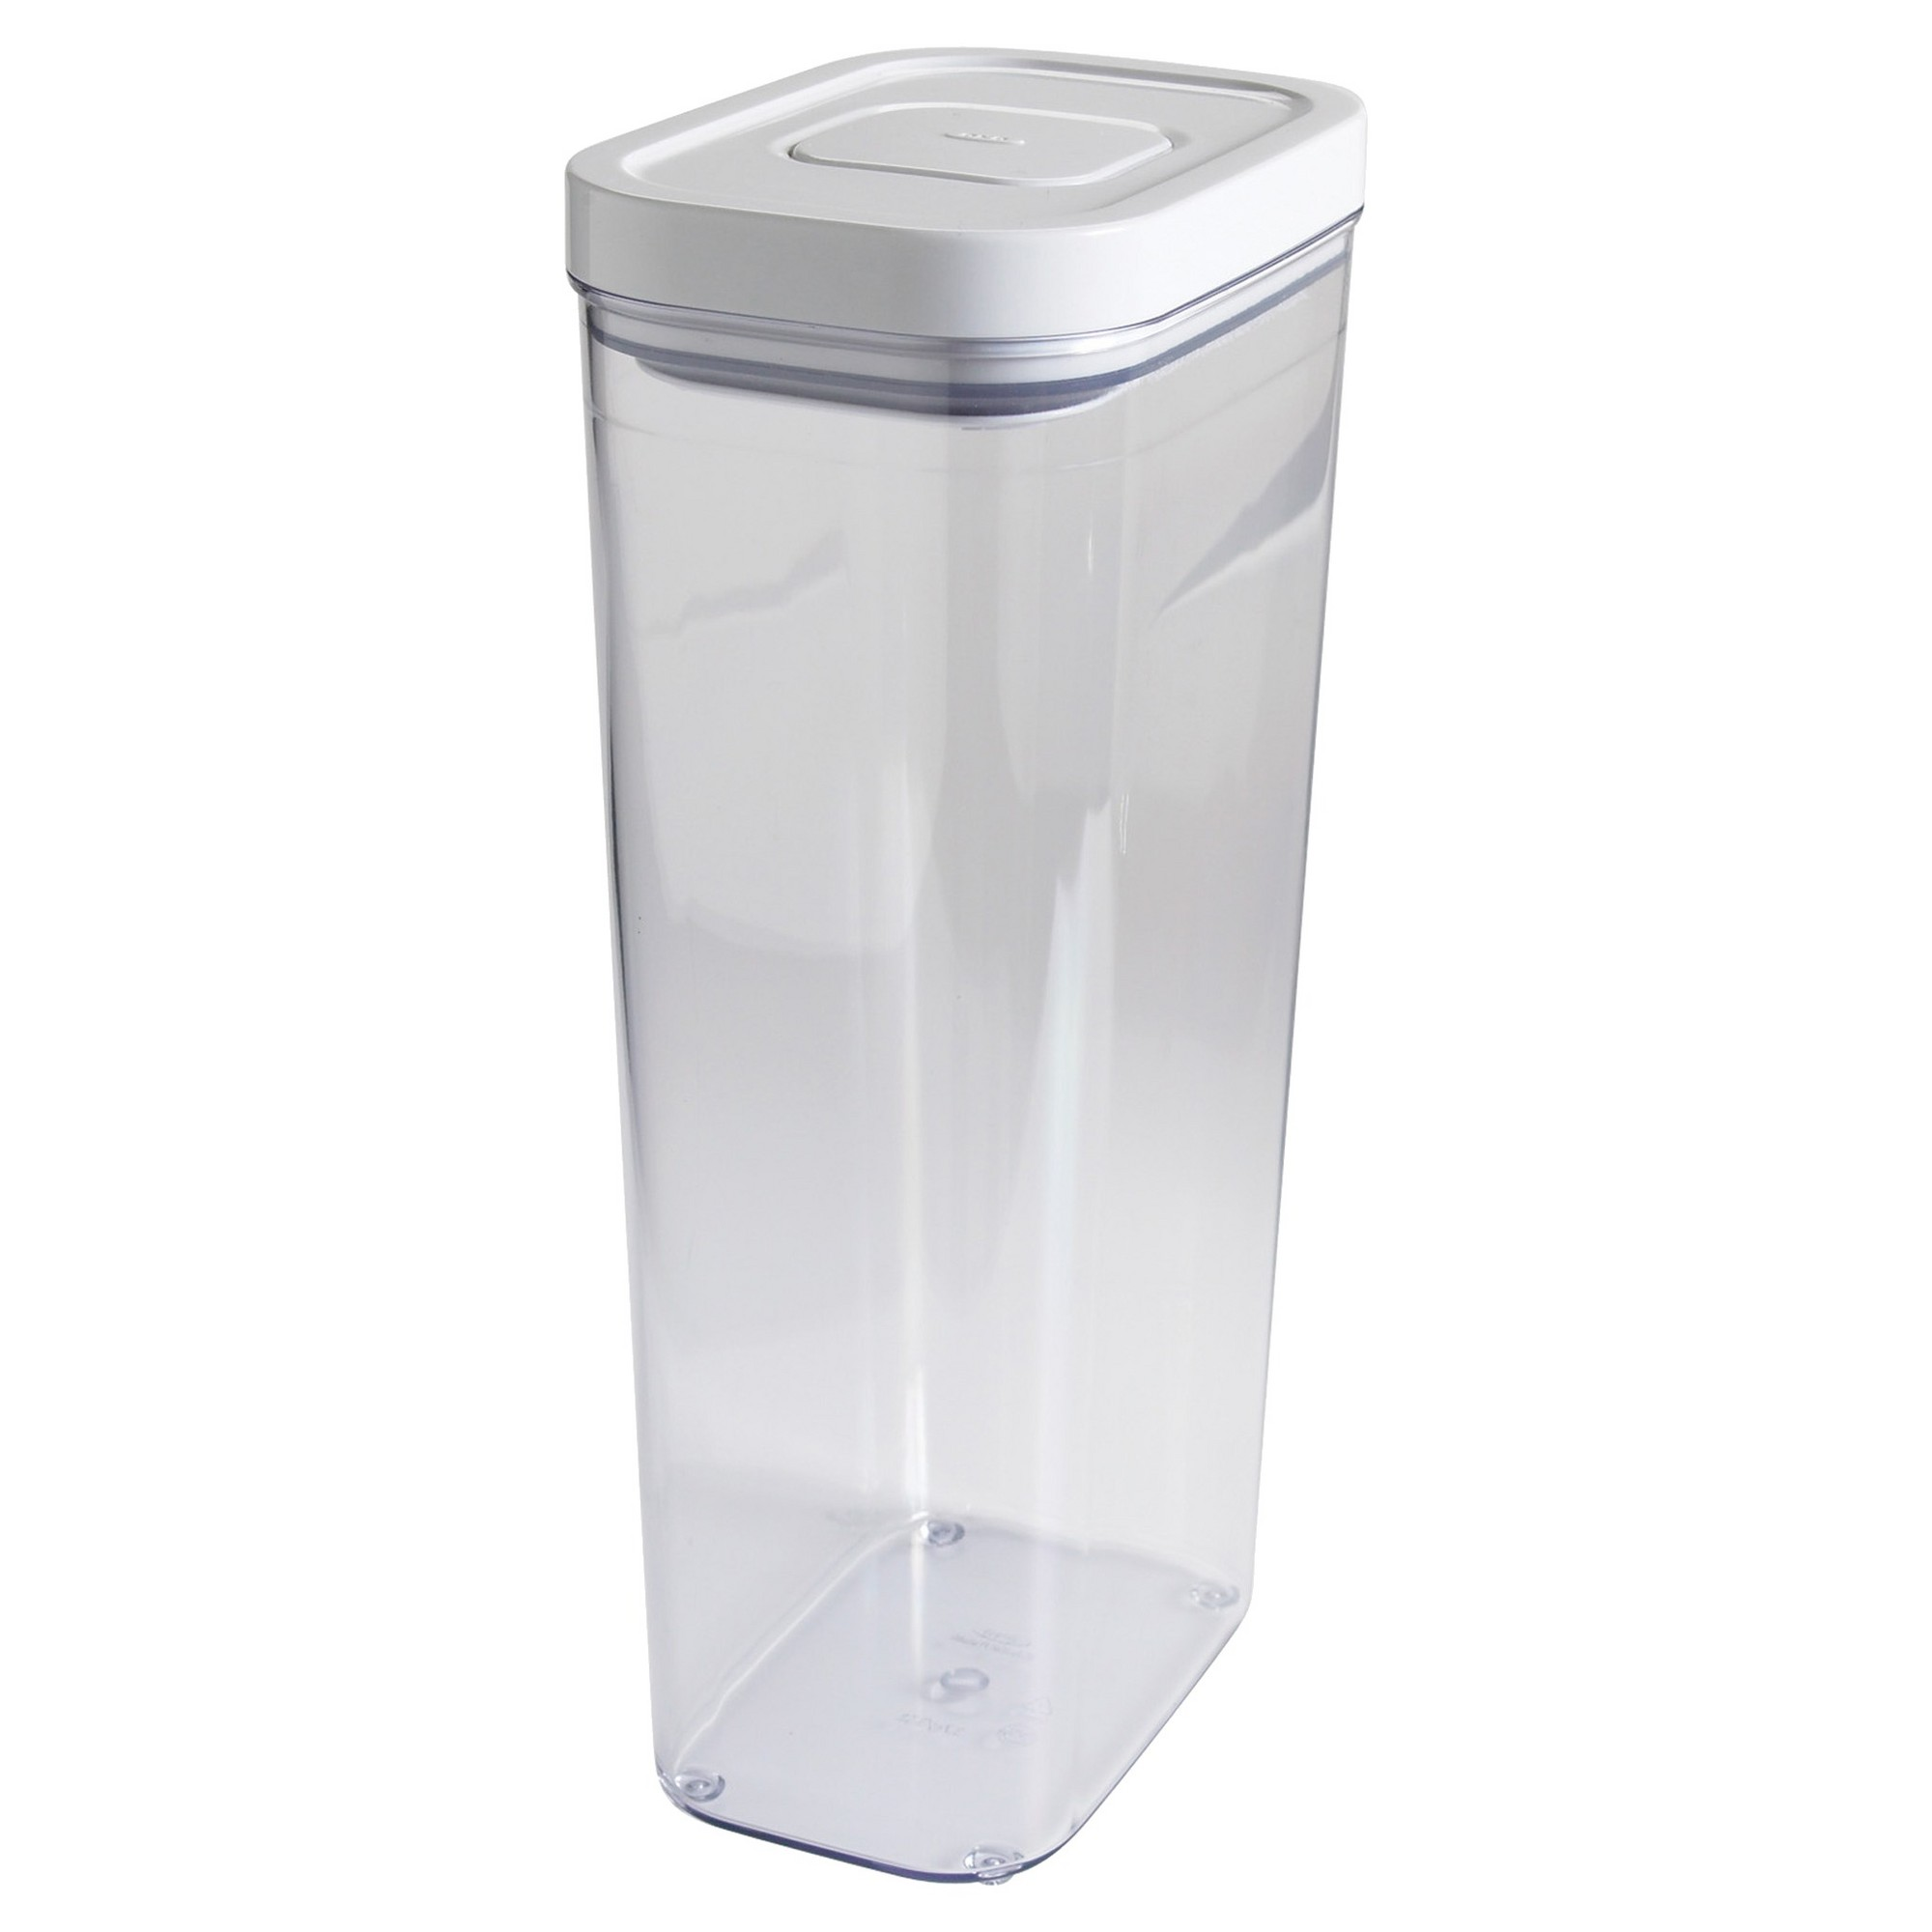 Oxo Pop 3 7qt Airtight Food Storage Container Clear Airtight Food Storage Containers Food Storage Food Storage Containers